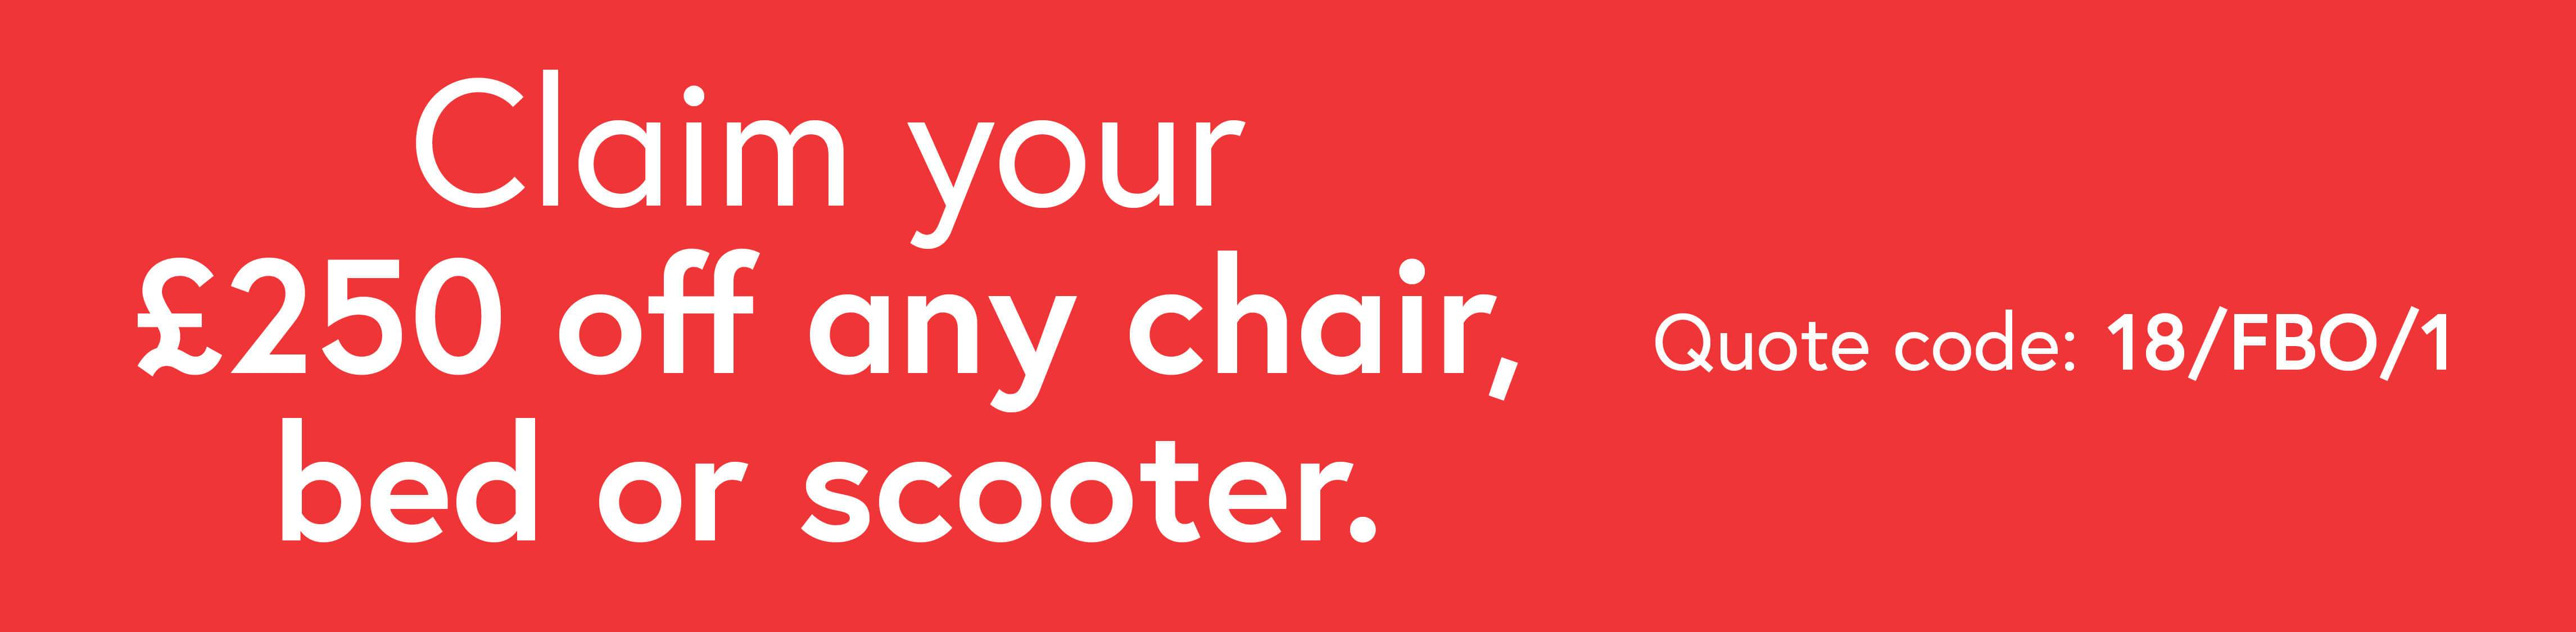 Claim your £250 off any chair, bed or scooter.